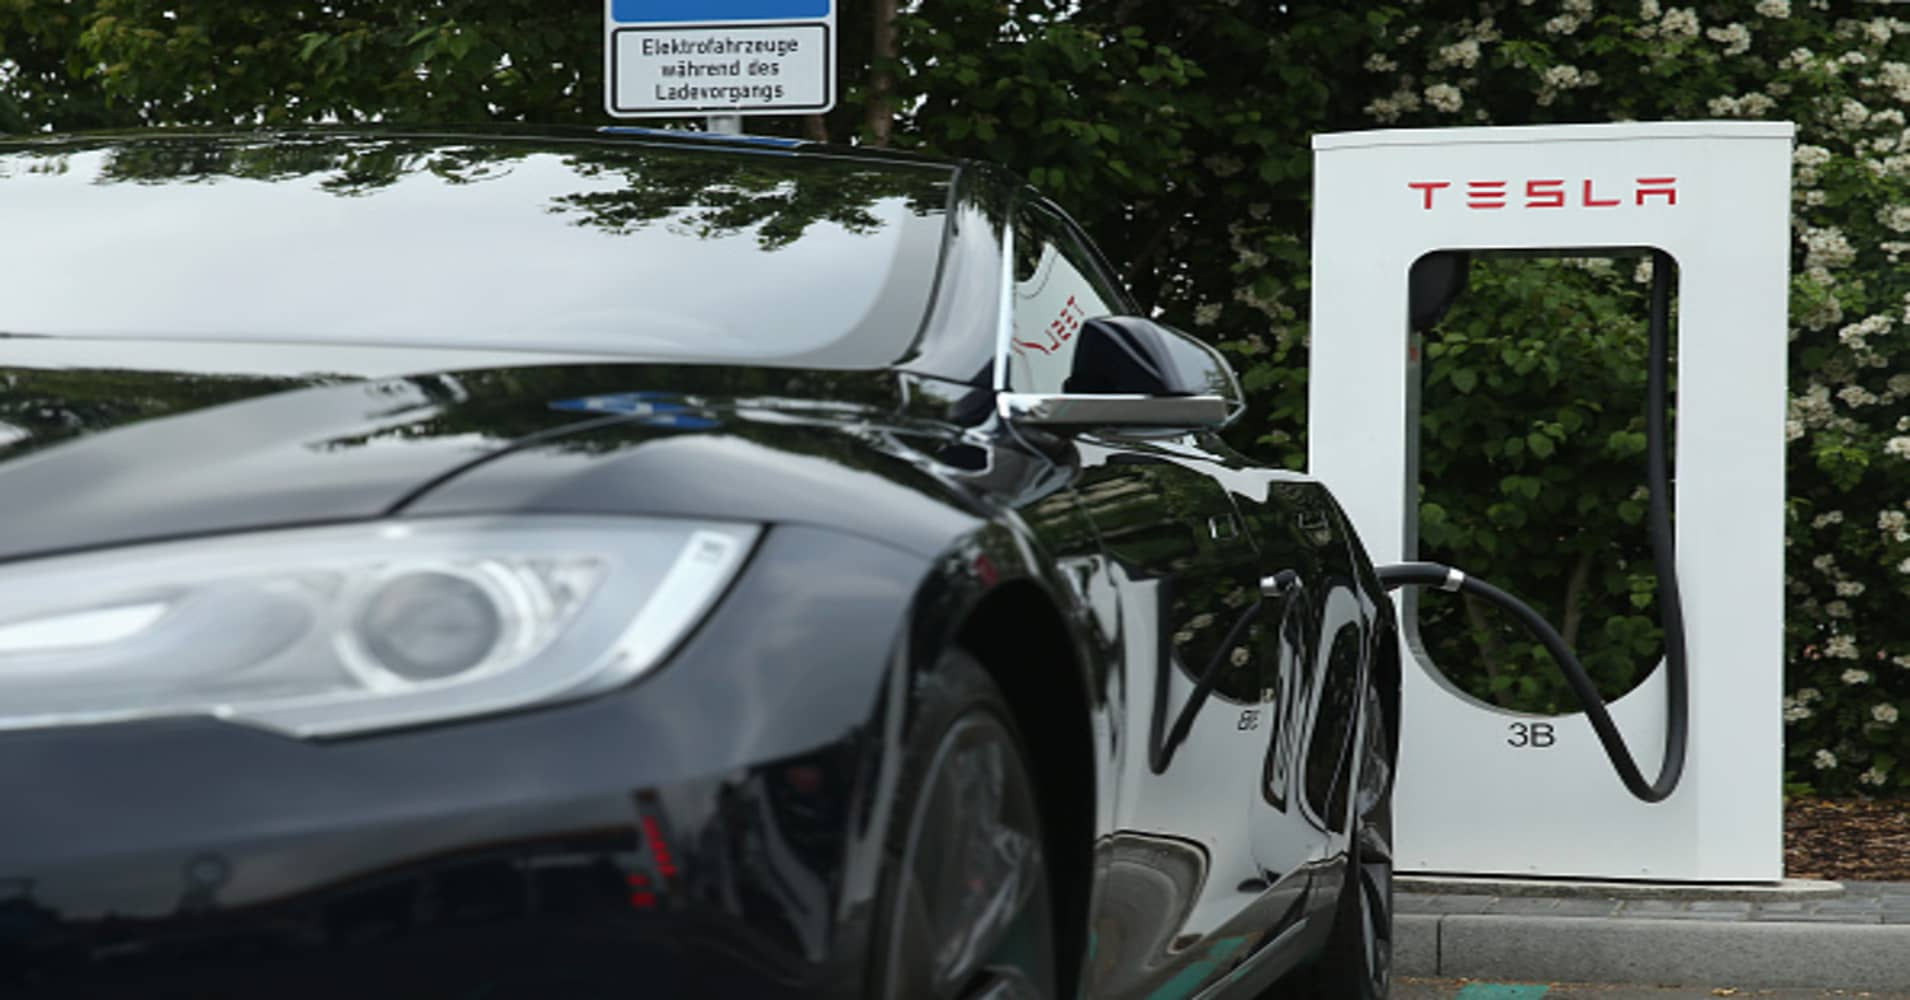 Tesla slips in Consumer Reports auto reliability study